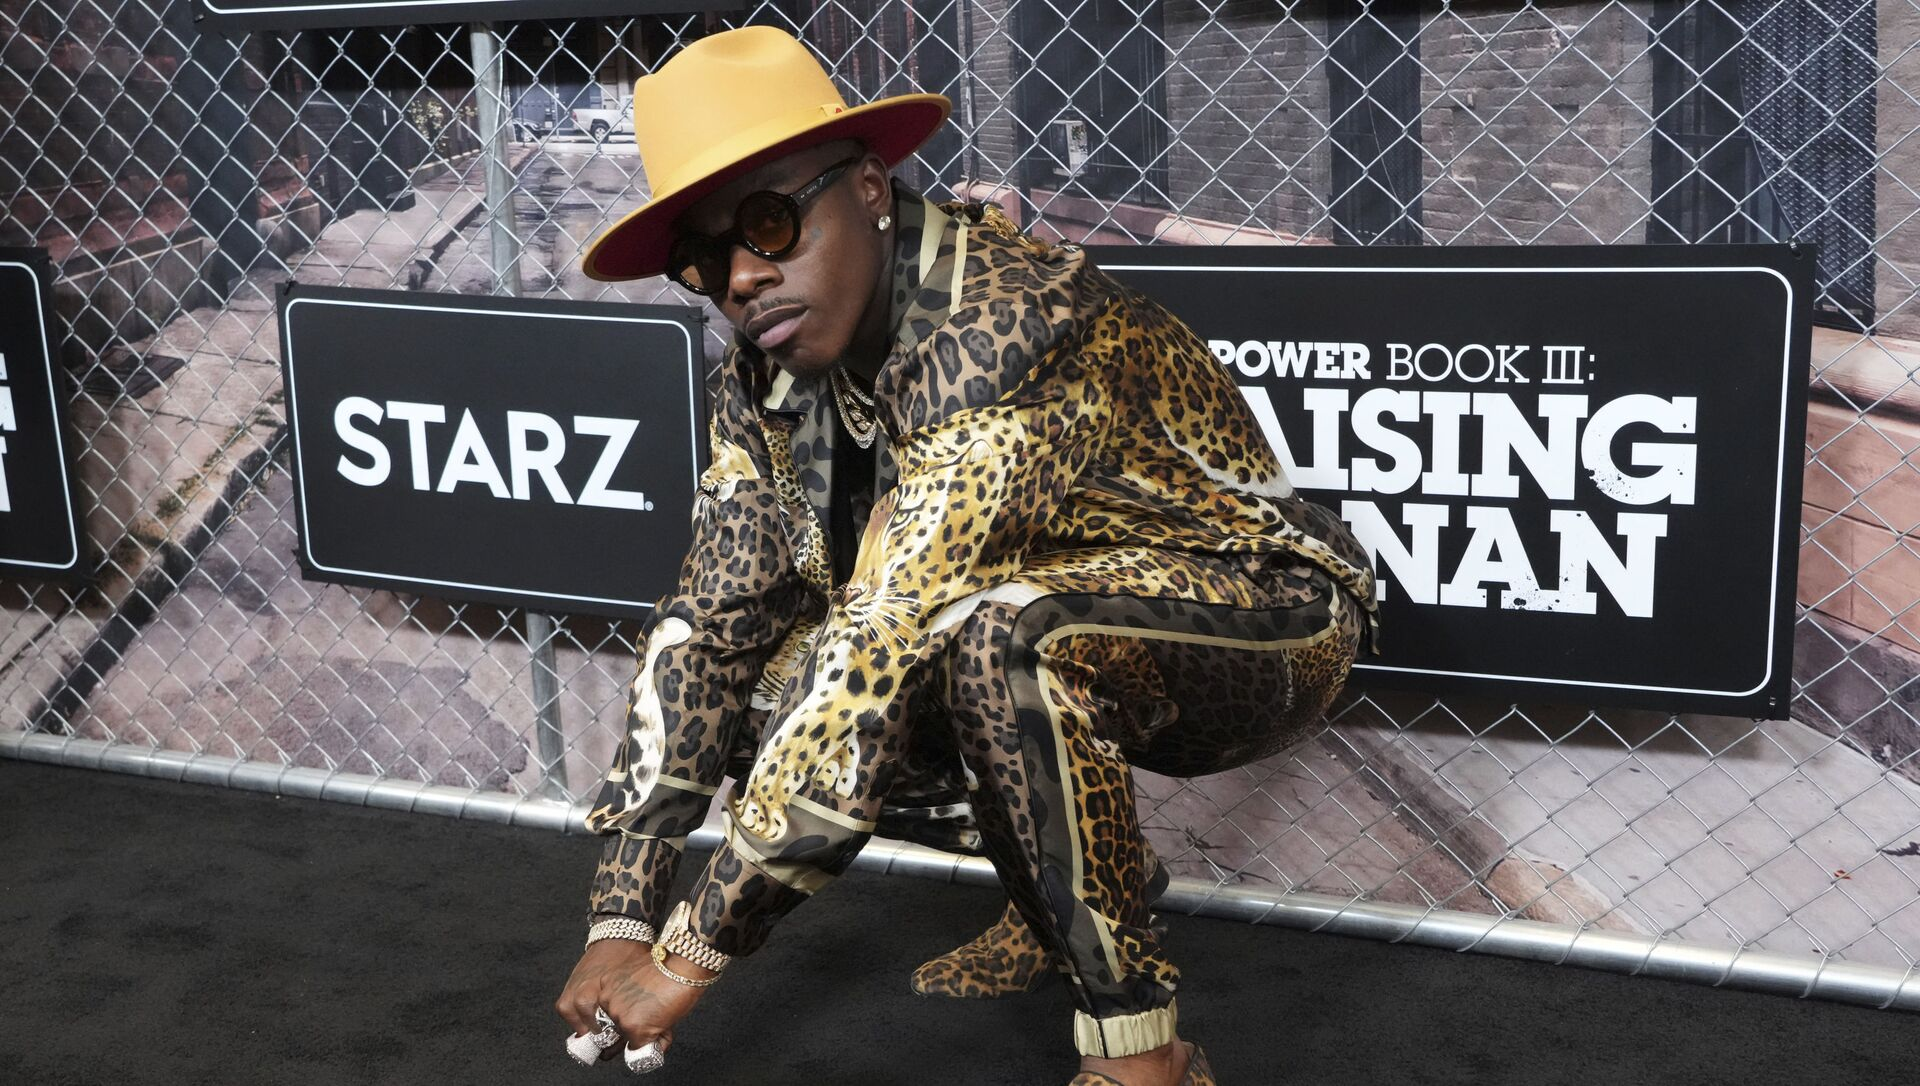 FILE - DaBaby attends the world premiere of Power Book III: Raising Kanan at the Hammerstein Ballroom on Thursday, July 15, 2021, in New York. DaBaby was cut Sunday, Aug. 1, 2021 from Lollapalooza's closing lineup following crude and homophobic remarks he made last week at a Miami-area music festival. - Sputnik International, 1920, 03.08.2021